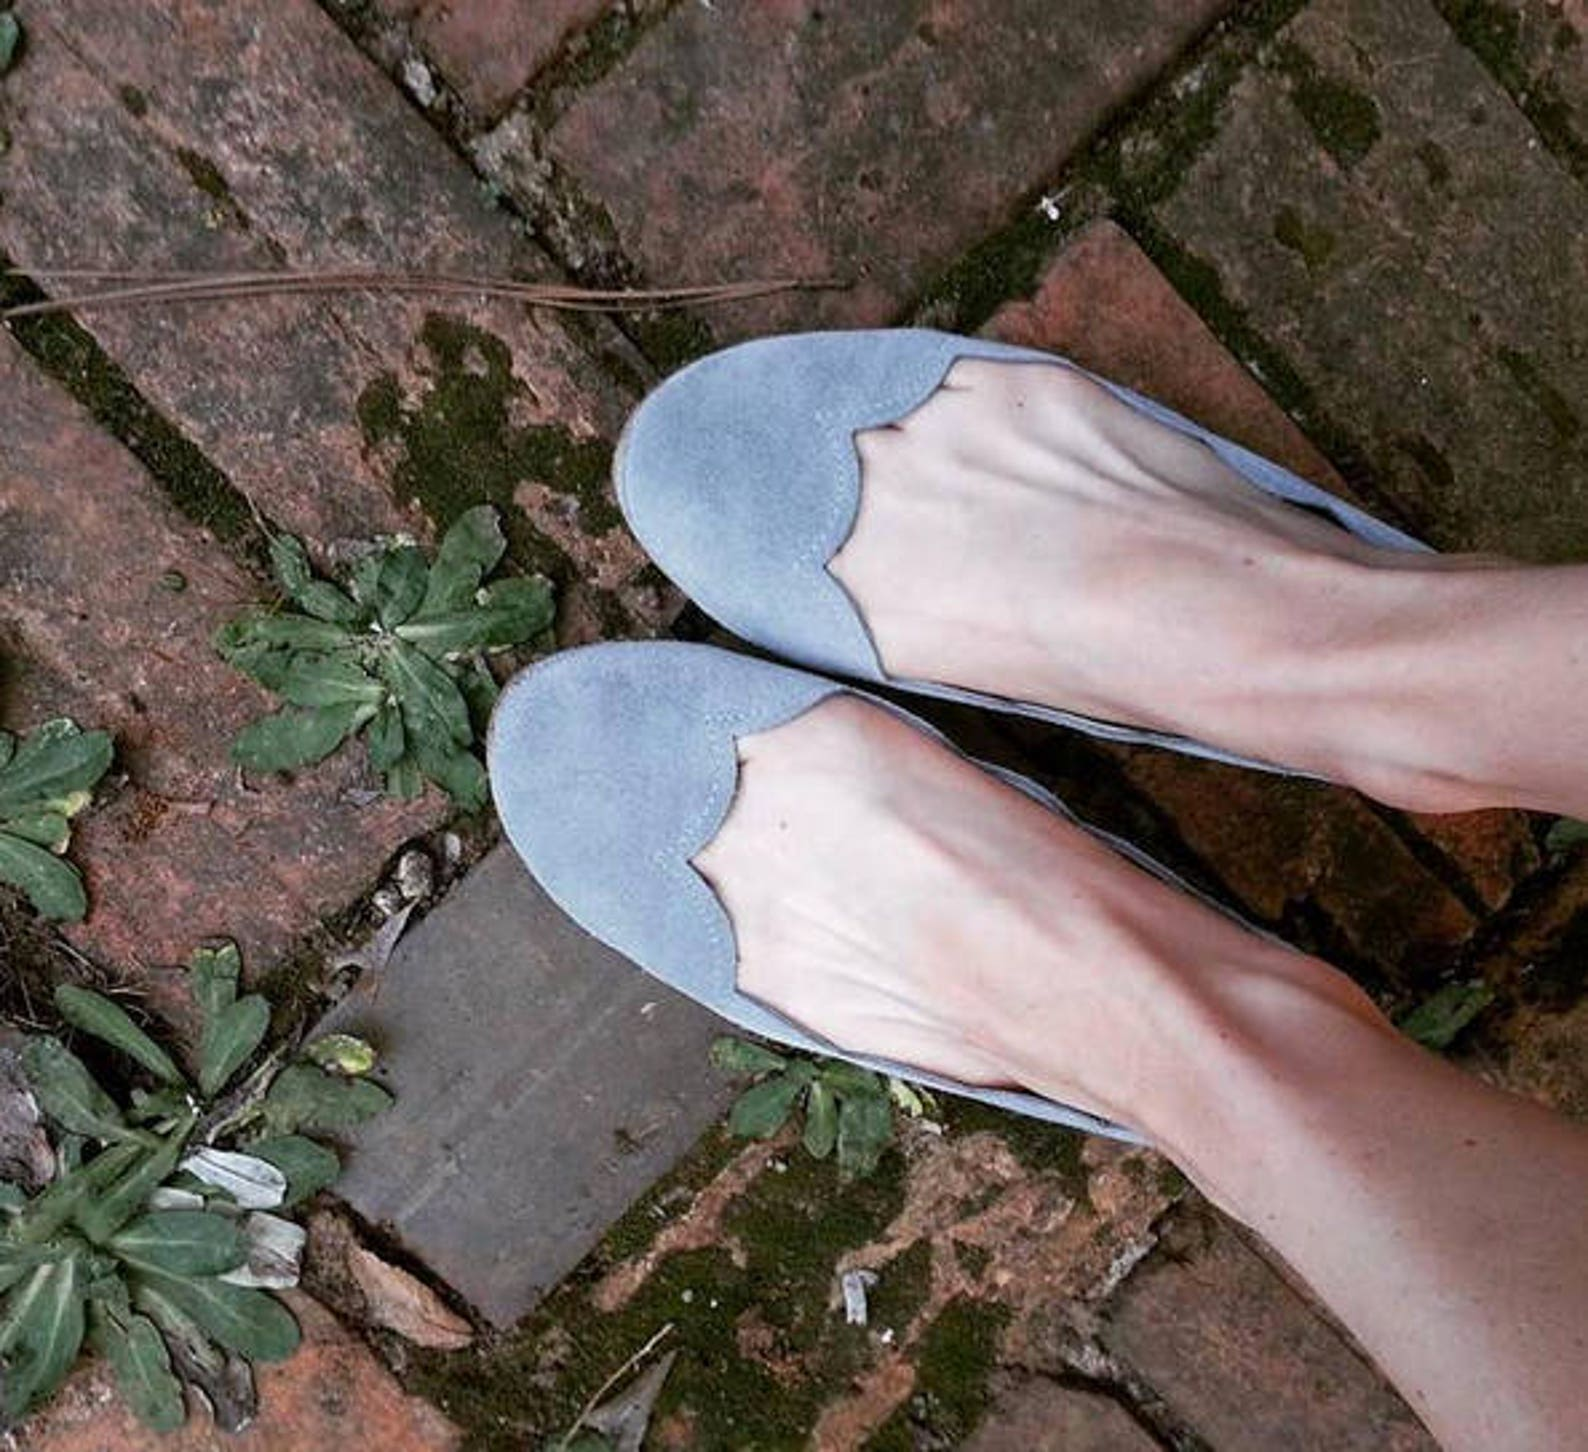 ballet flats shoes. leather shoes. handmade shoes. bridal low heel shoe. serenity wedding shoes. bridesmaids gift. scalloped fla